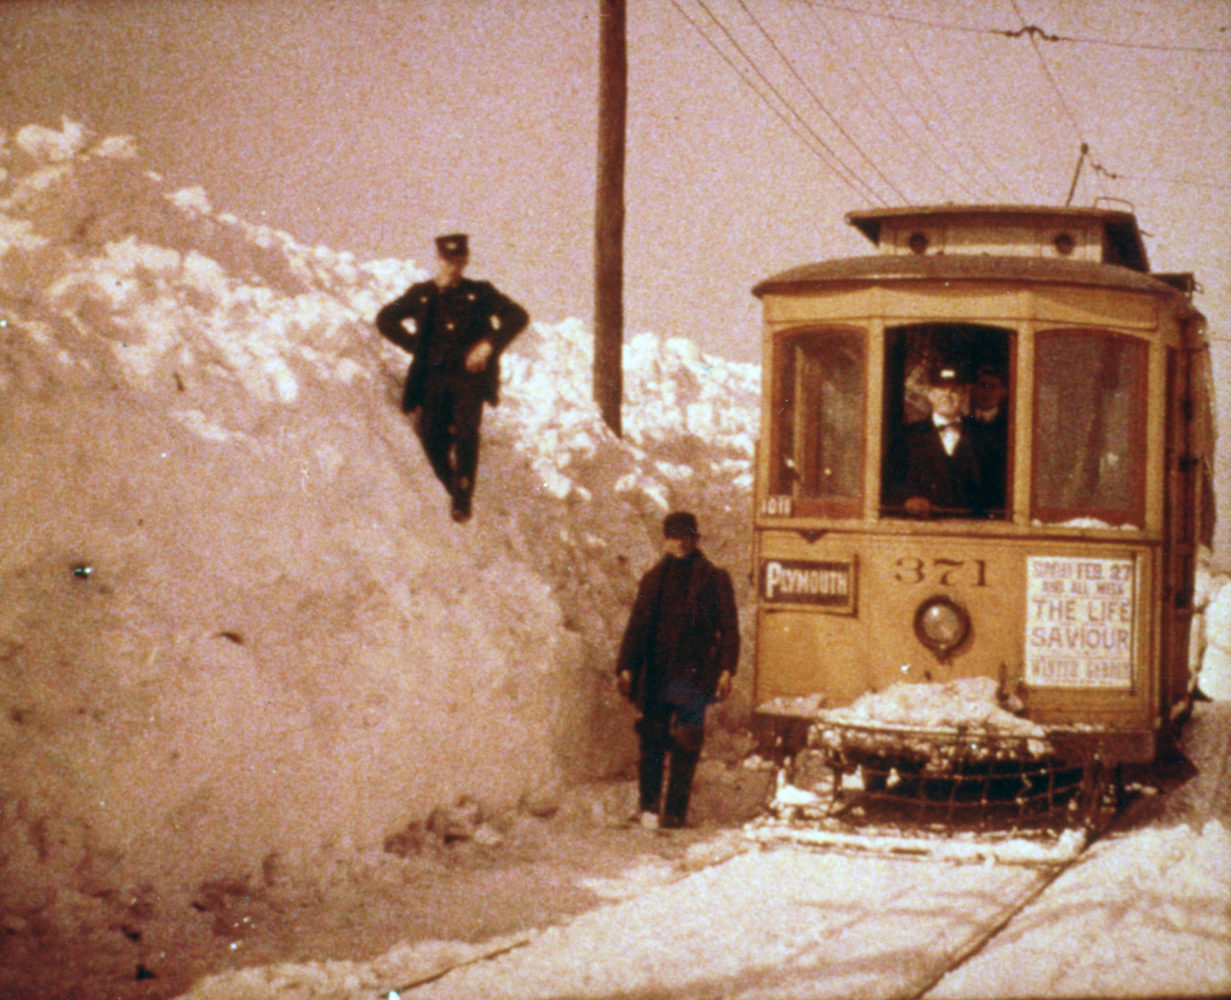 Plymouth Avenue street car - photo from City of Rochester